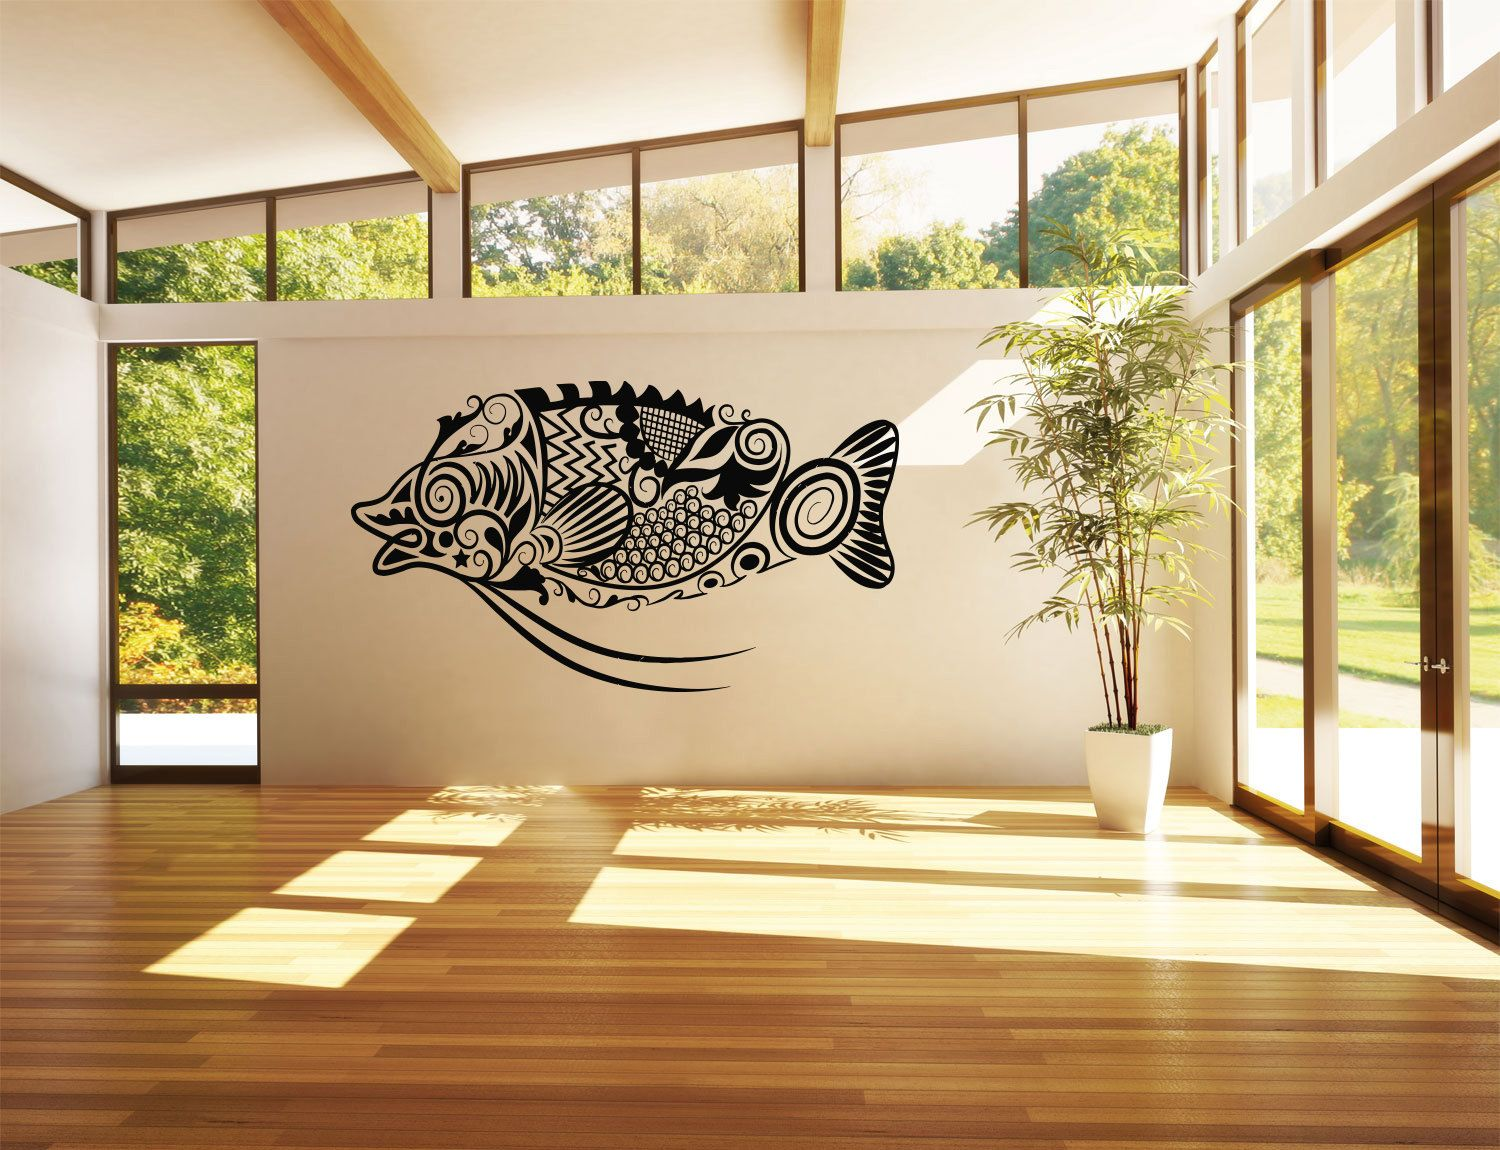 Wall Vinyl Sticker Decals Mural Room Design Pattern Art Decor Fish ...